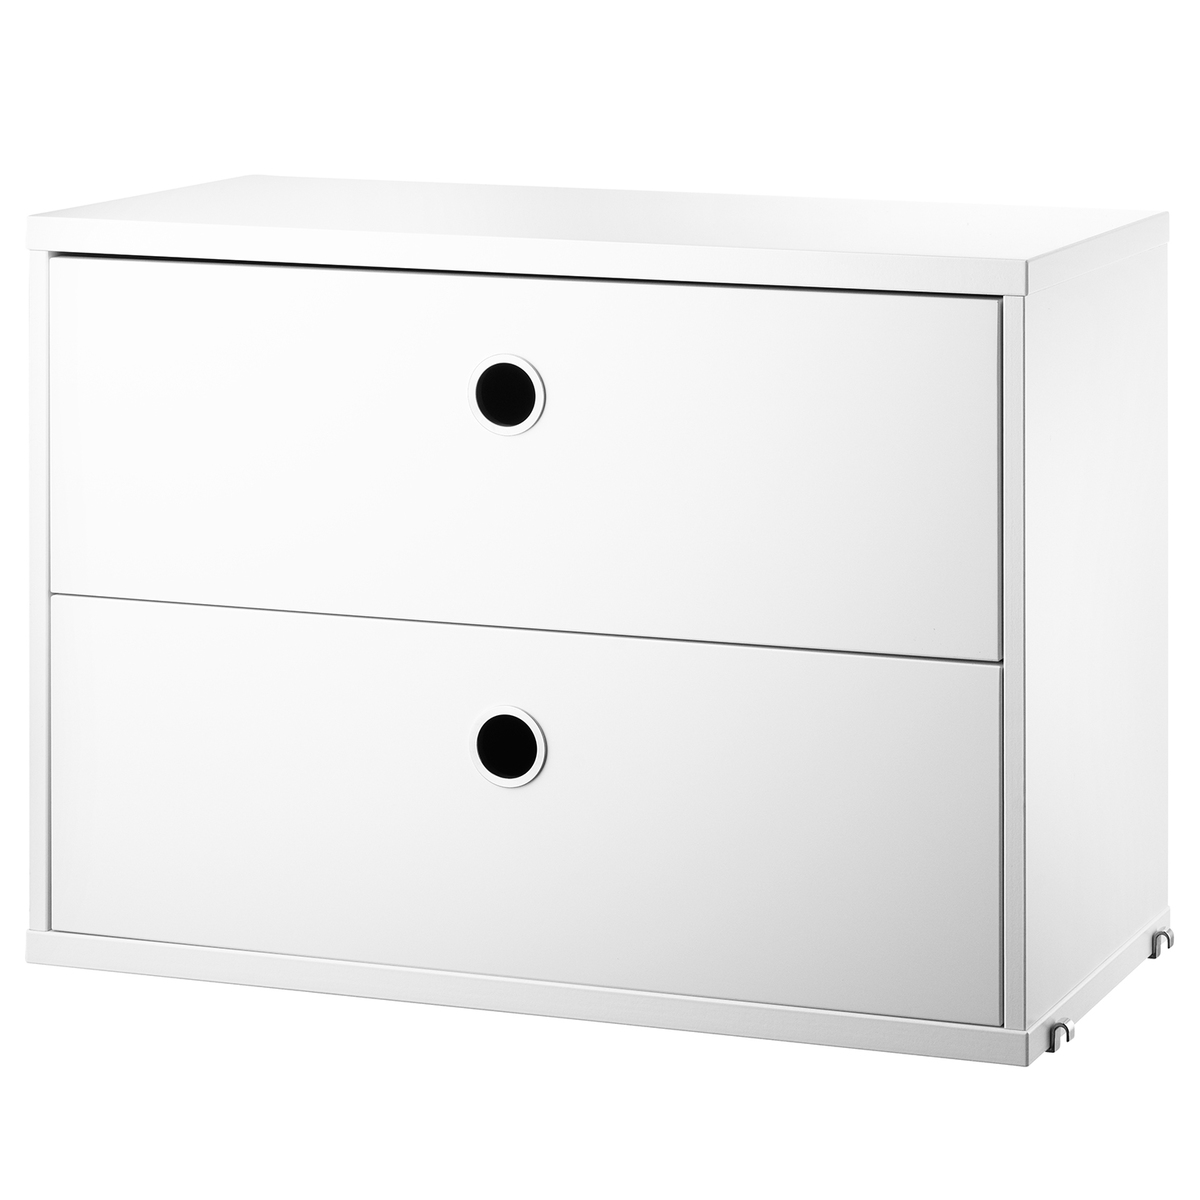 String Furniture String chest with 2 drawers, 58 x 30 cm, white from String Furniture